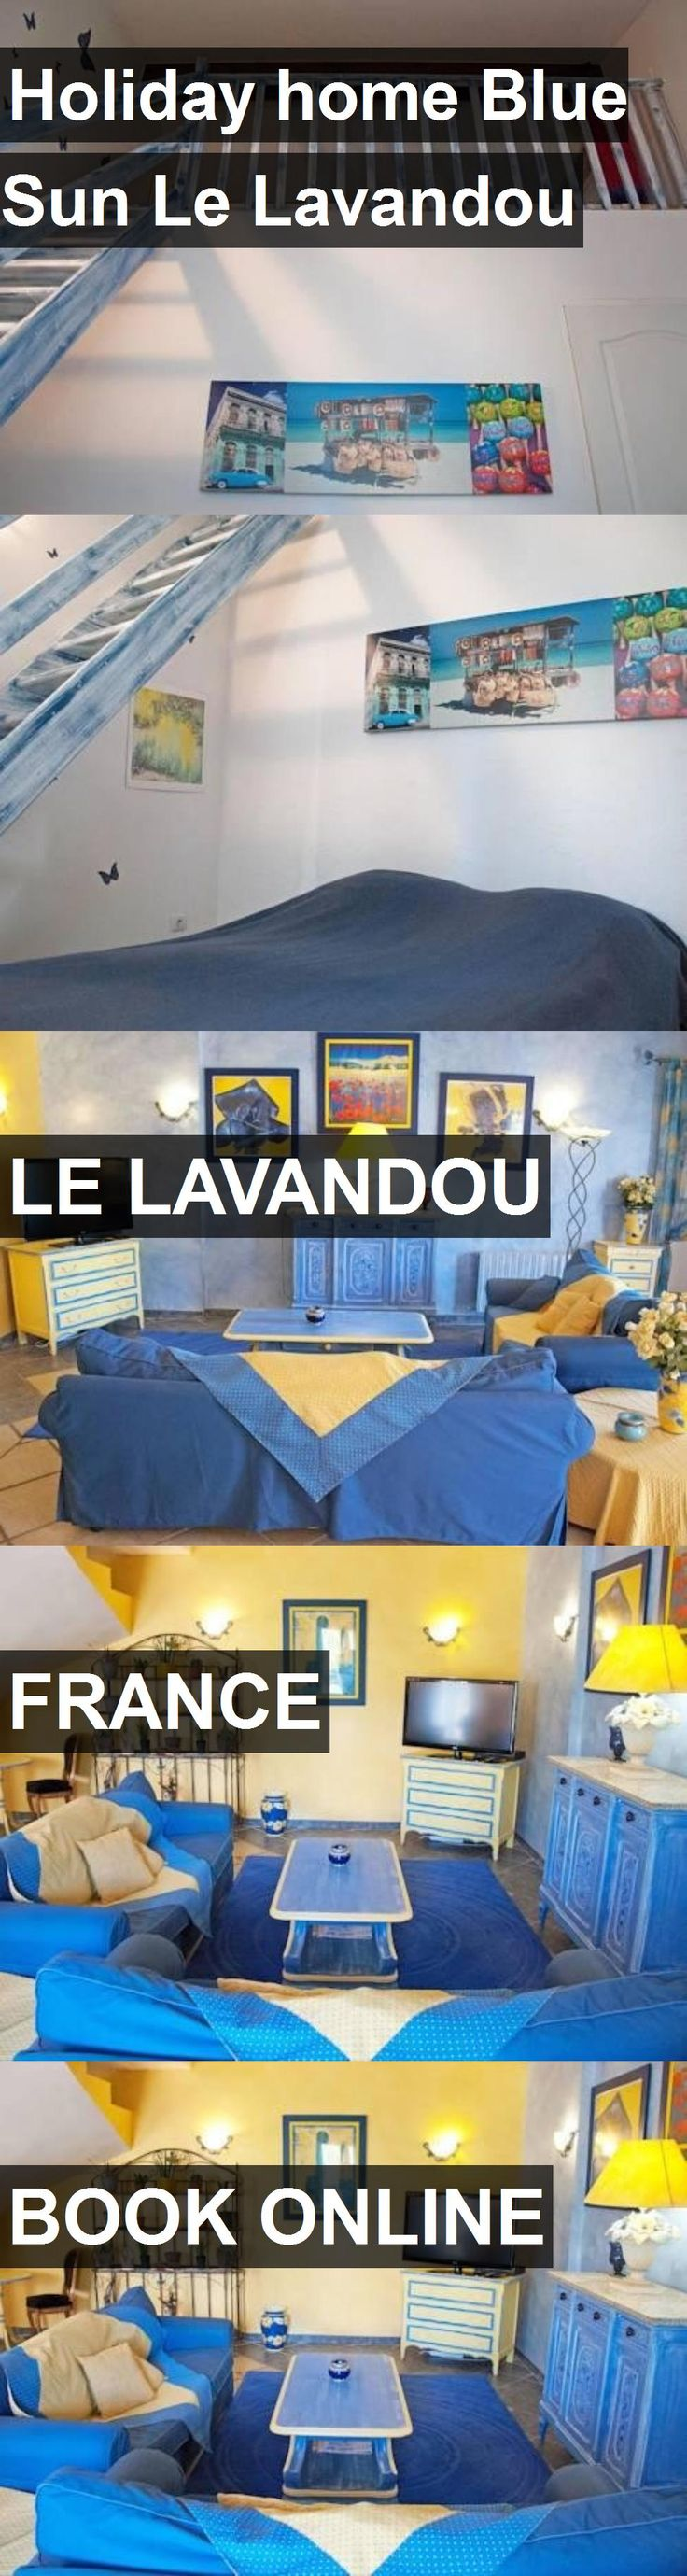 Hotel Holiday home Blue Sun Le Lavandou in Le Lavandou, France. For more information, photos, reviews and best prices please follow the link. #France #LeLavandou #travel #vacation #hotel